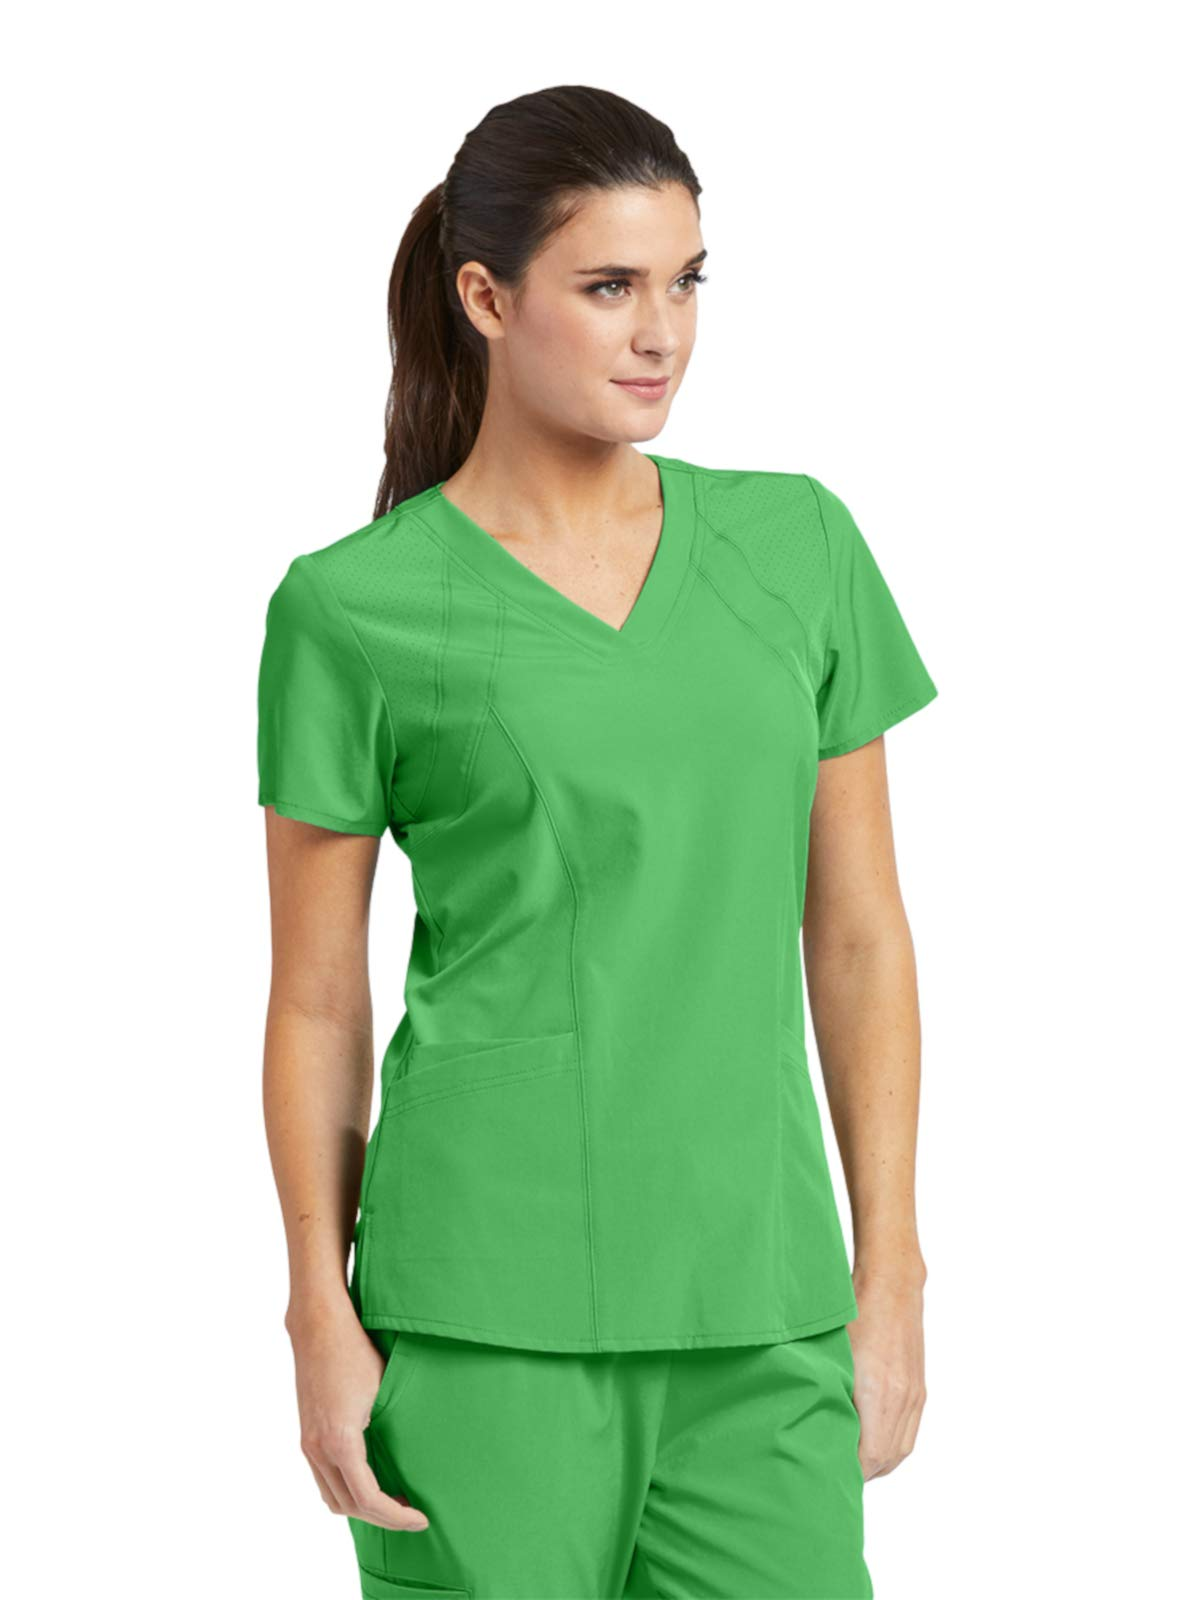 Barco One 5105 Women's V-Neck Top Go Green S